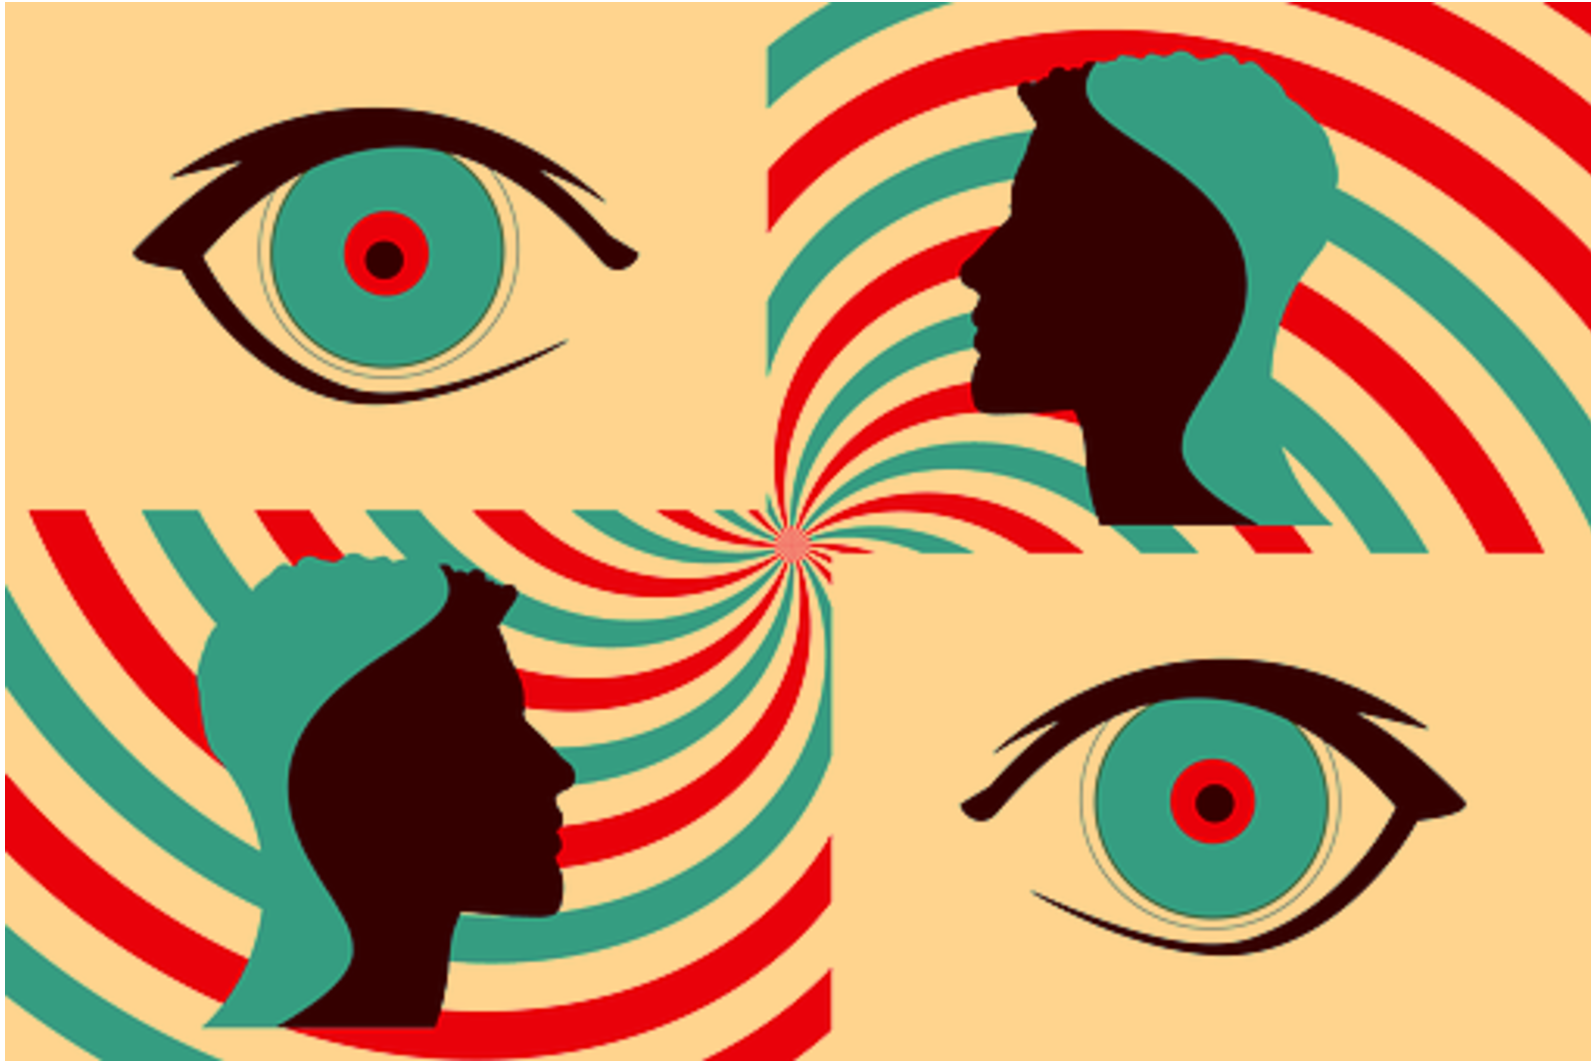 eyes and heads depicting anxiety